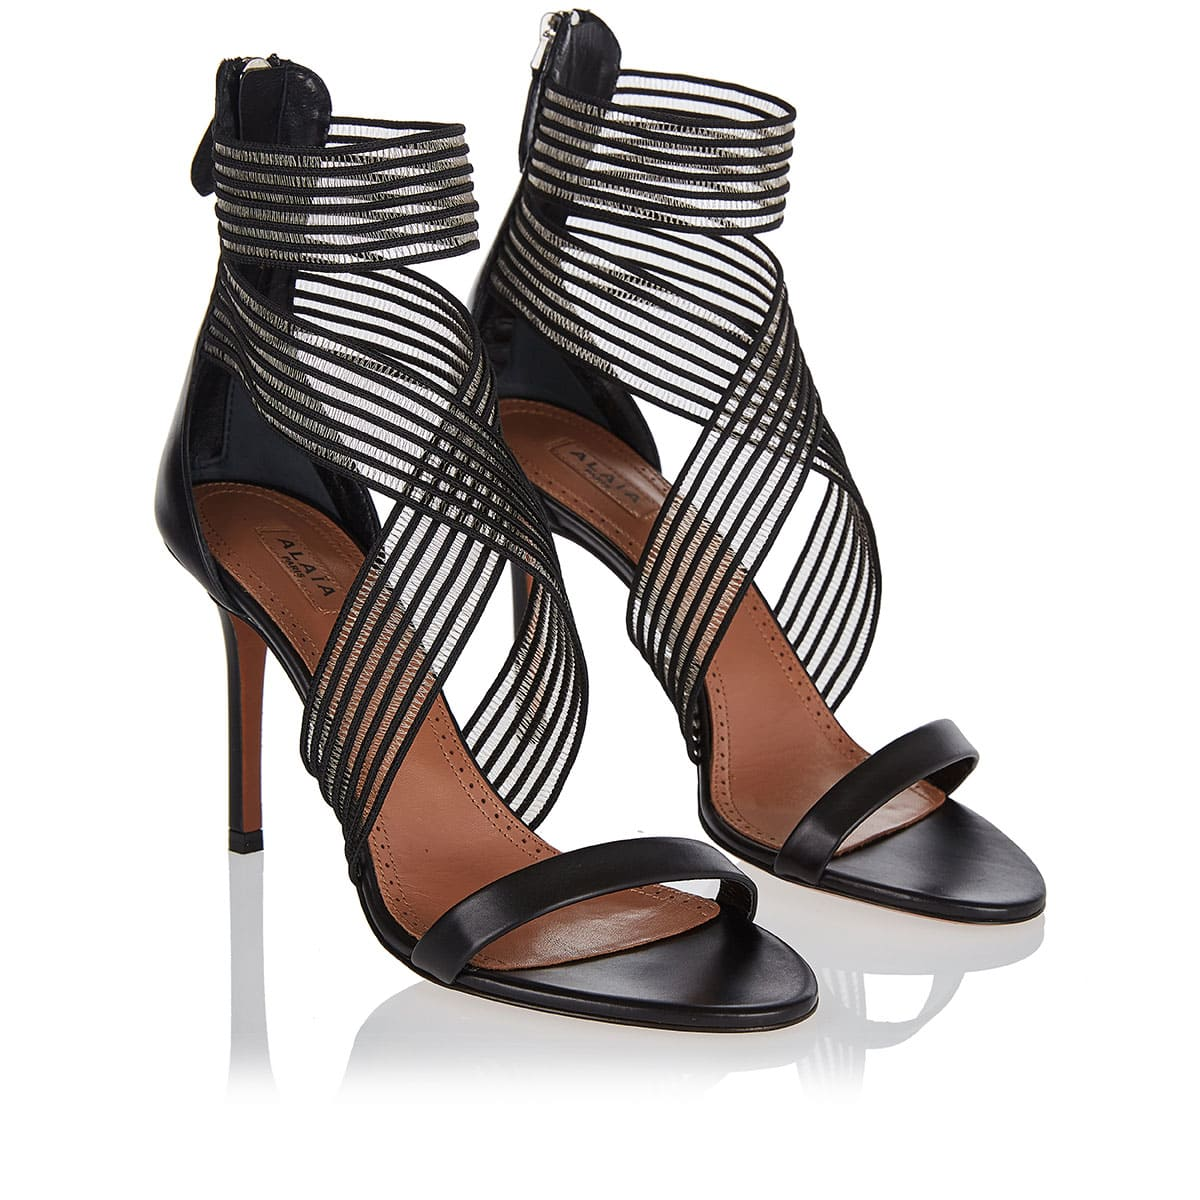 Leather and mesh sandals